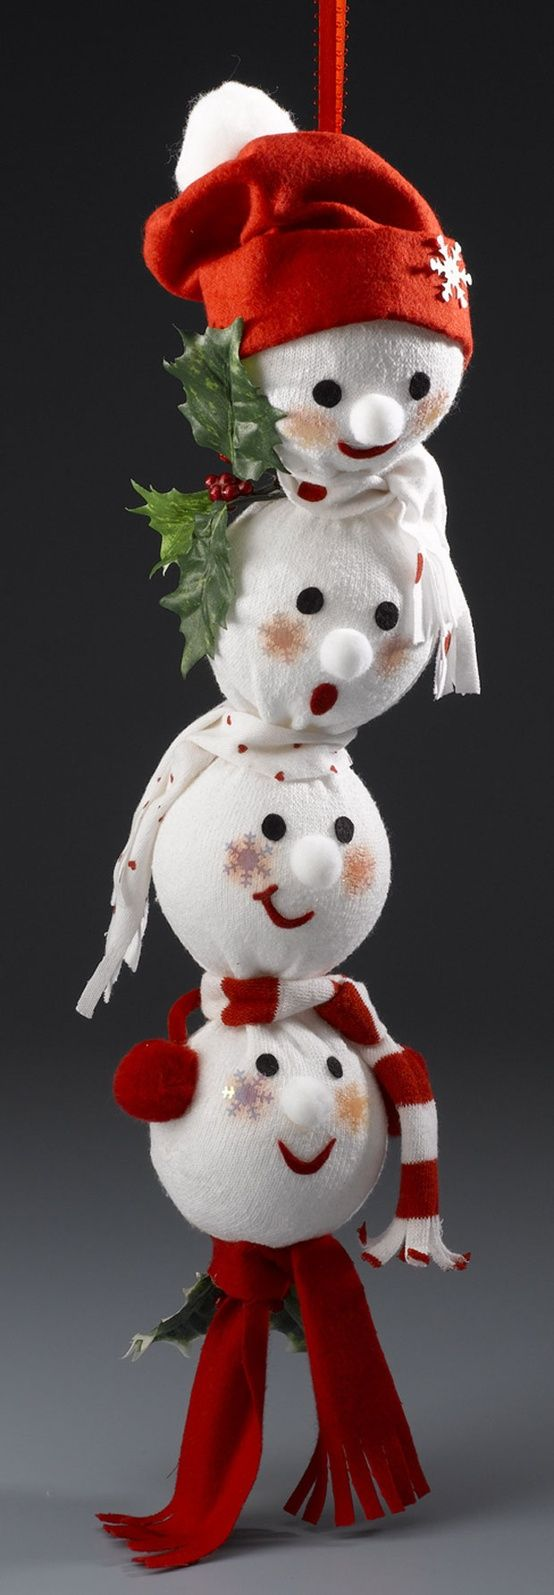 Snowman Christmas Decor. A sock with 4 styrofoam balls and then embellished  how ever you